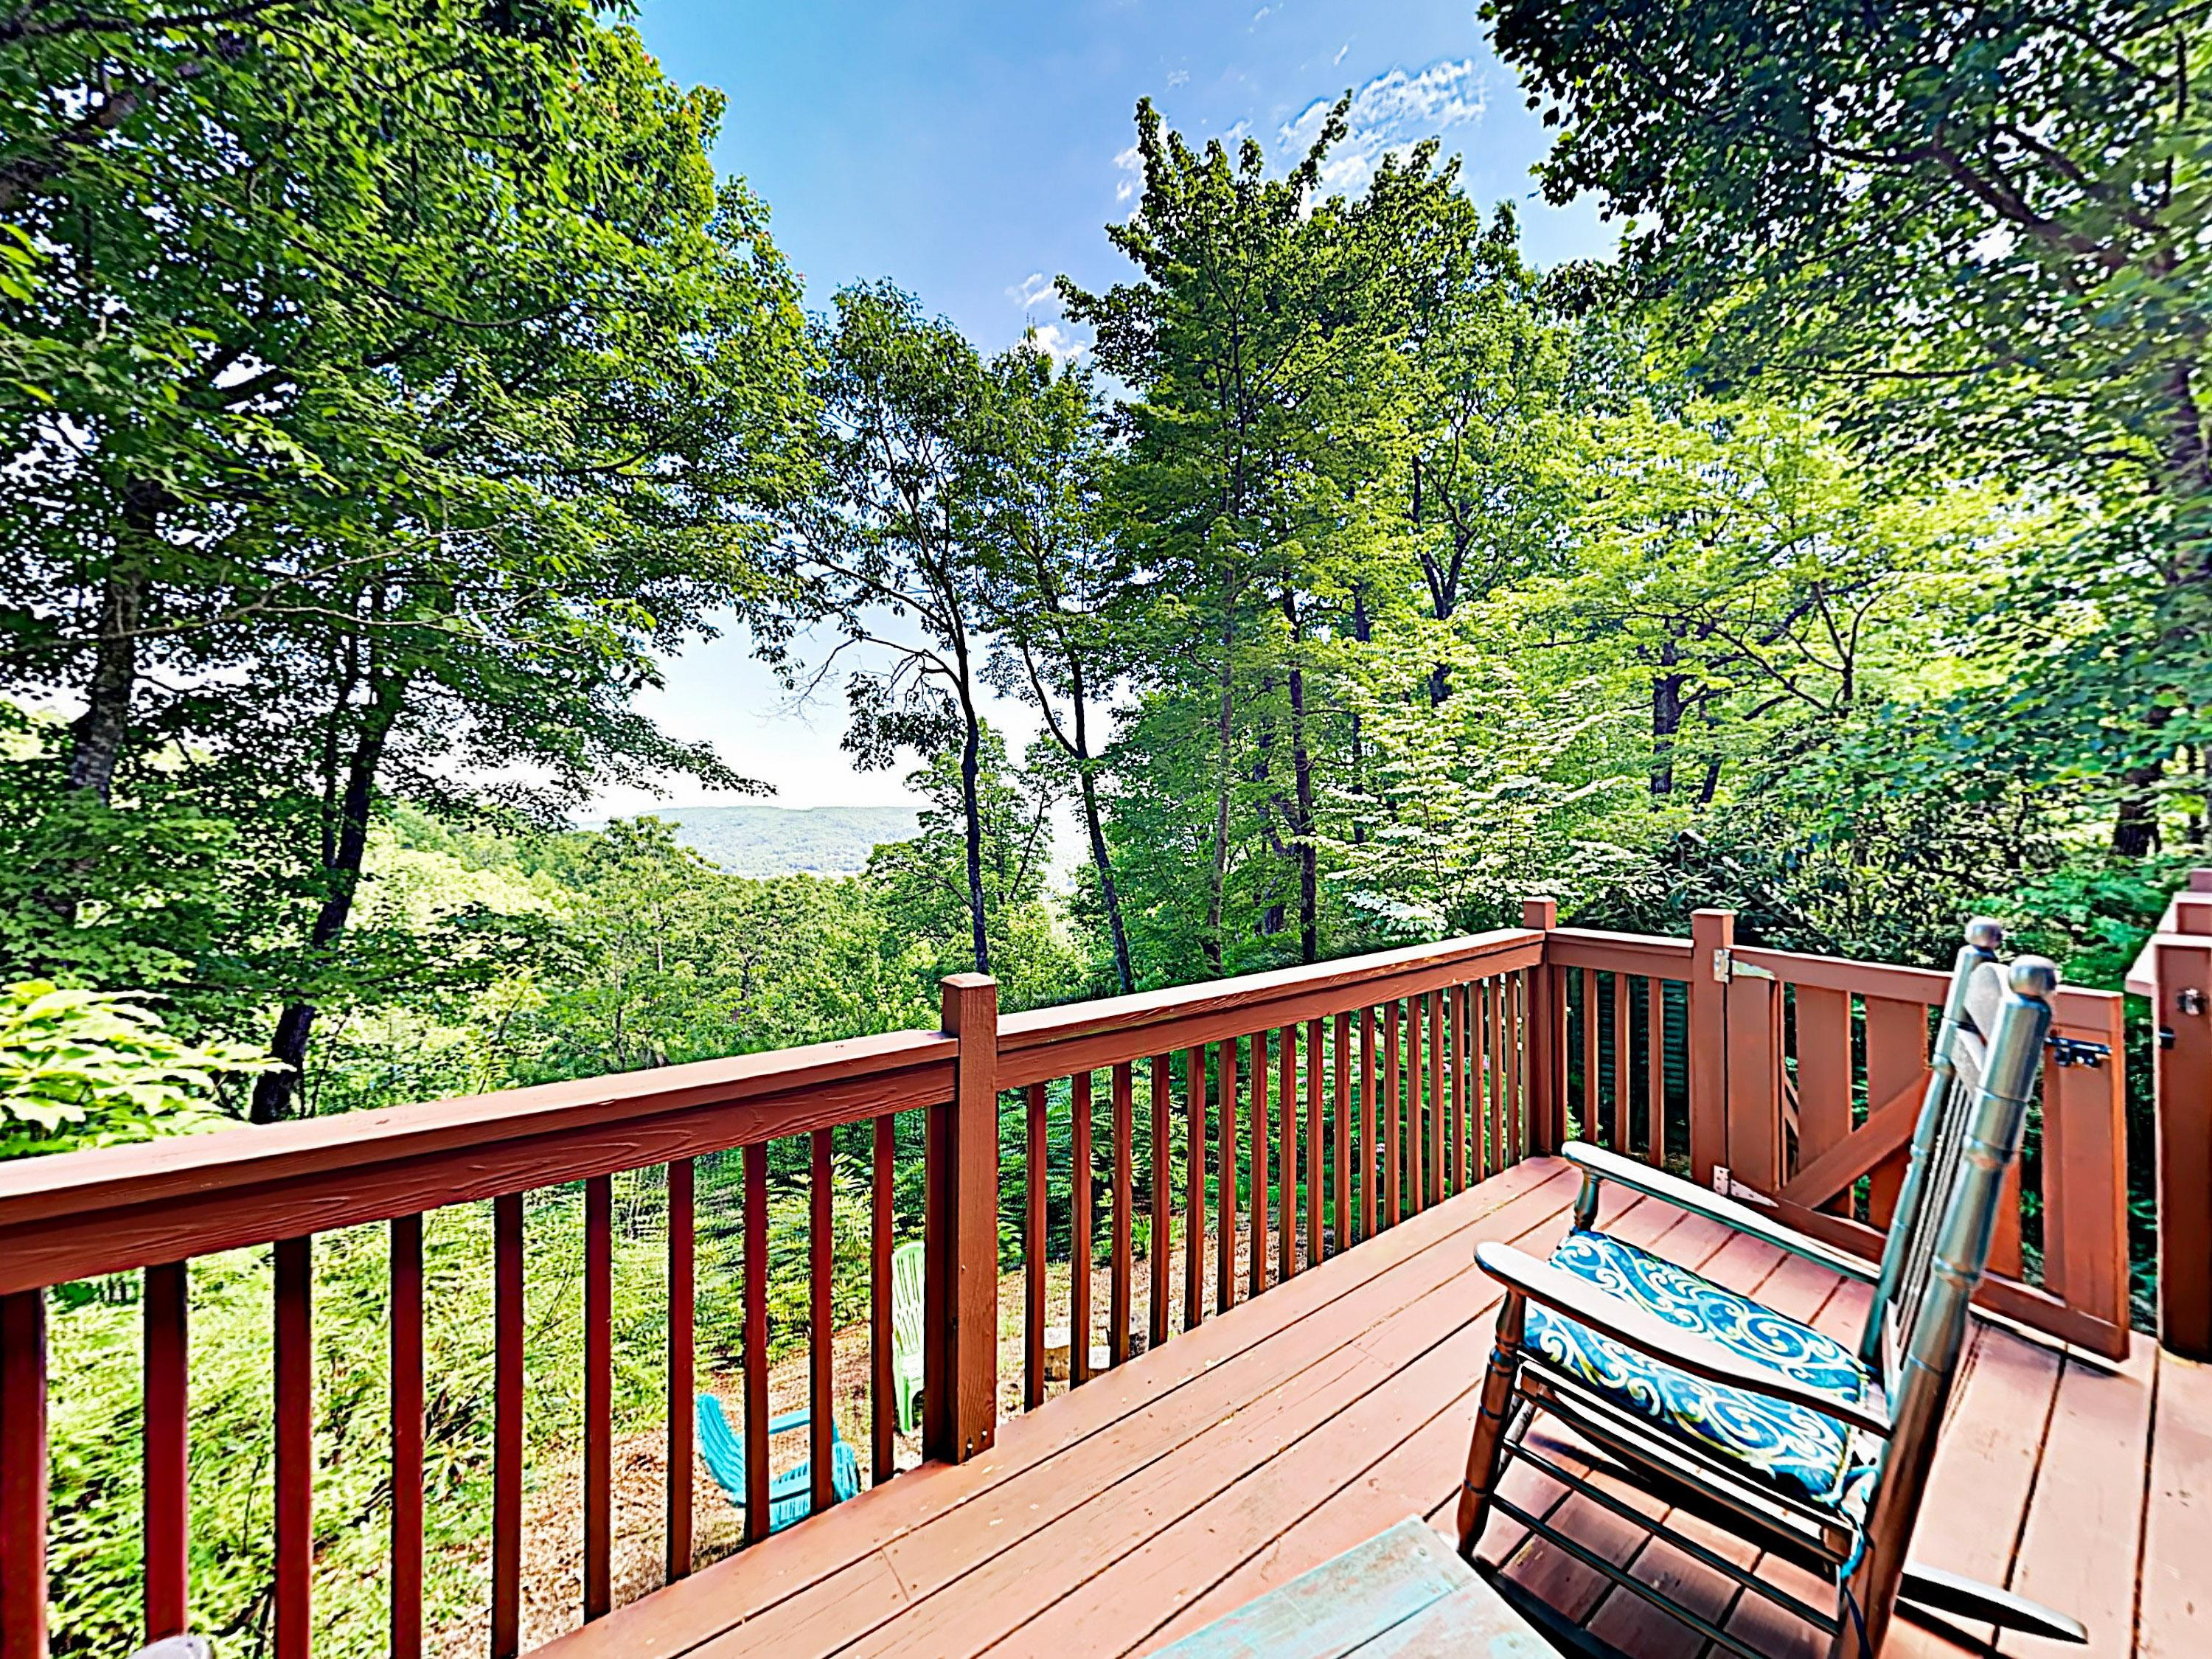 Take in sweeping views of the mountains and forest from the elevated deck.